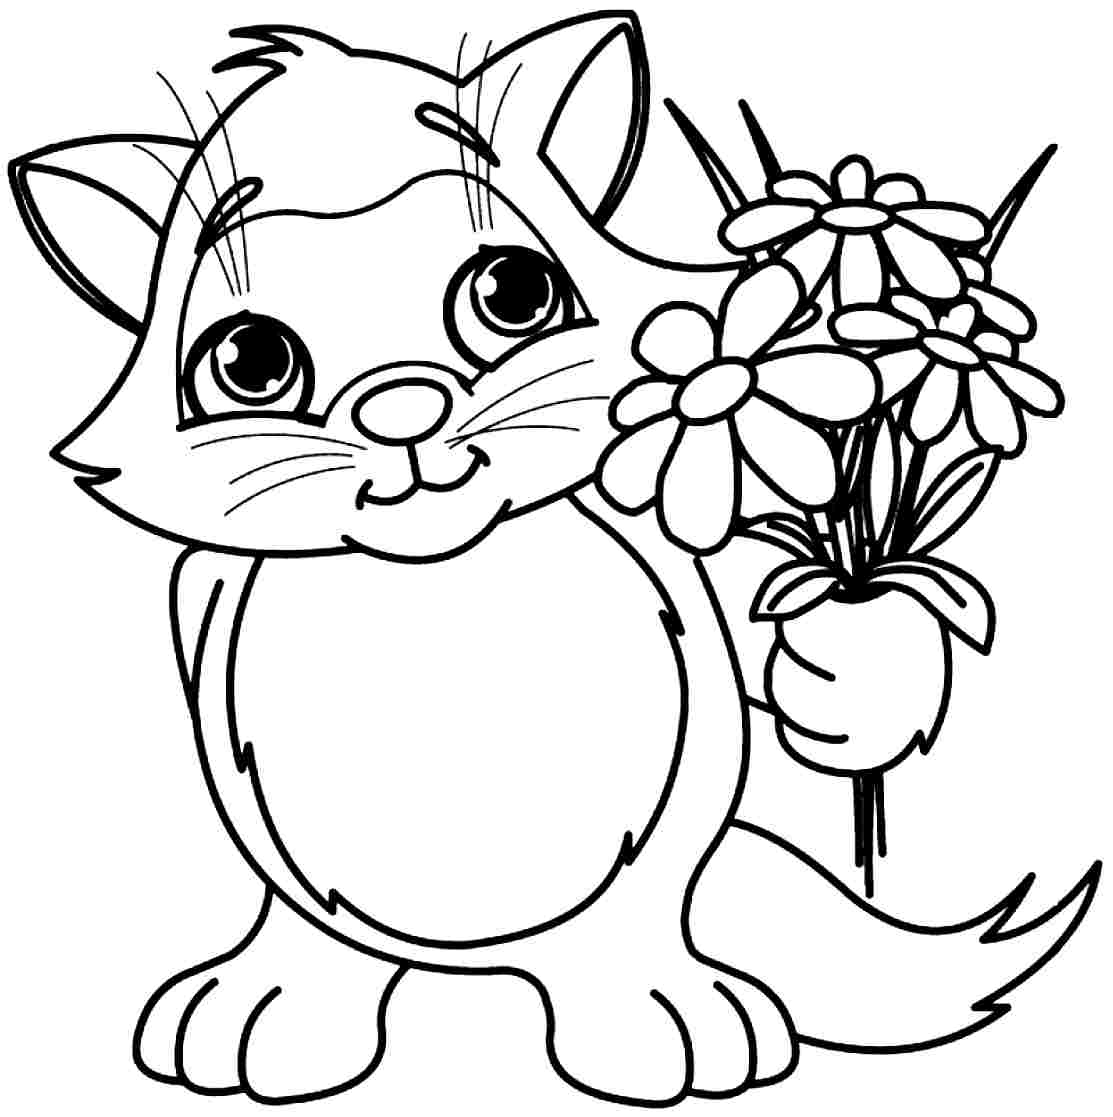 flower coloring pages free printable free printable flower coloring pages for kids cool2bkids free pages printable coloring flower